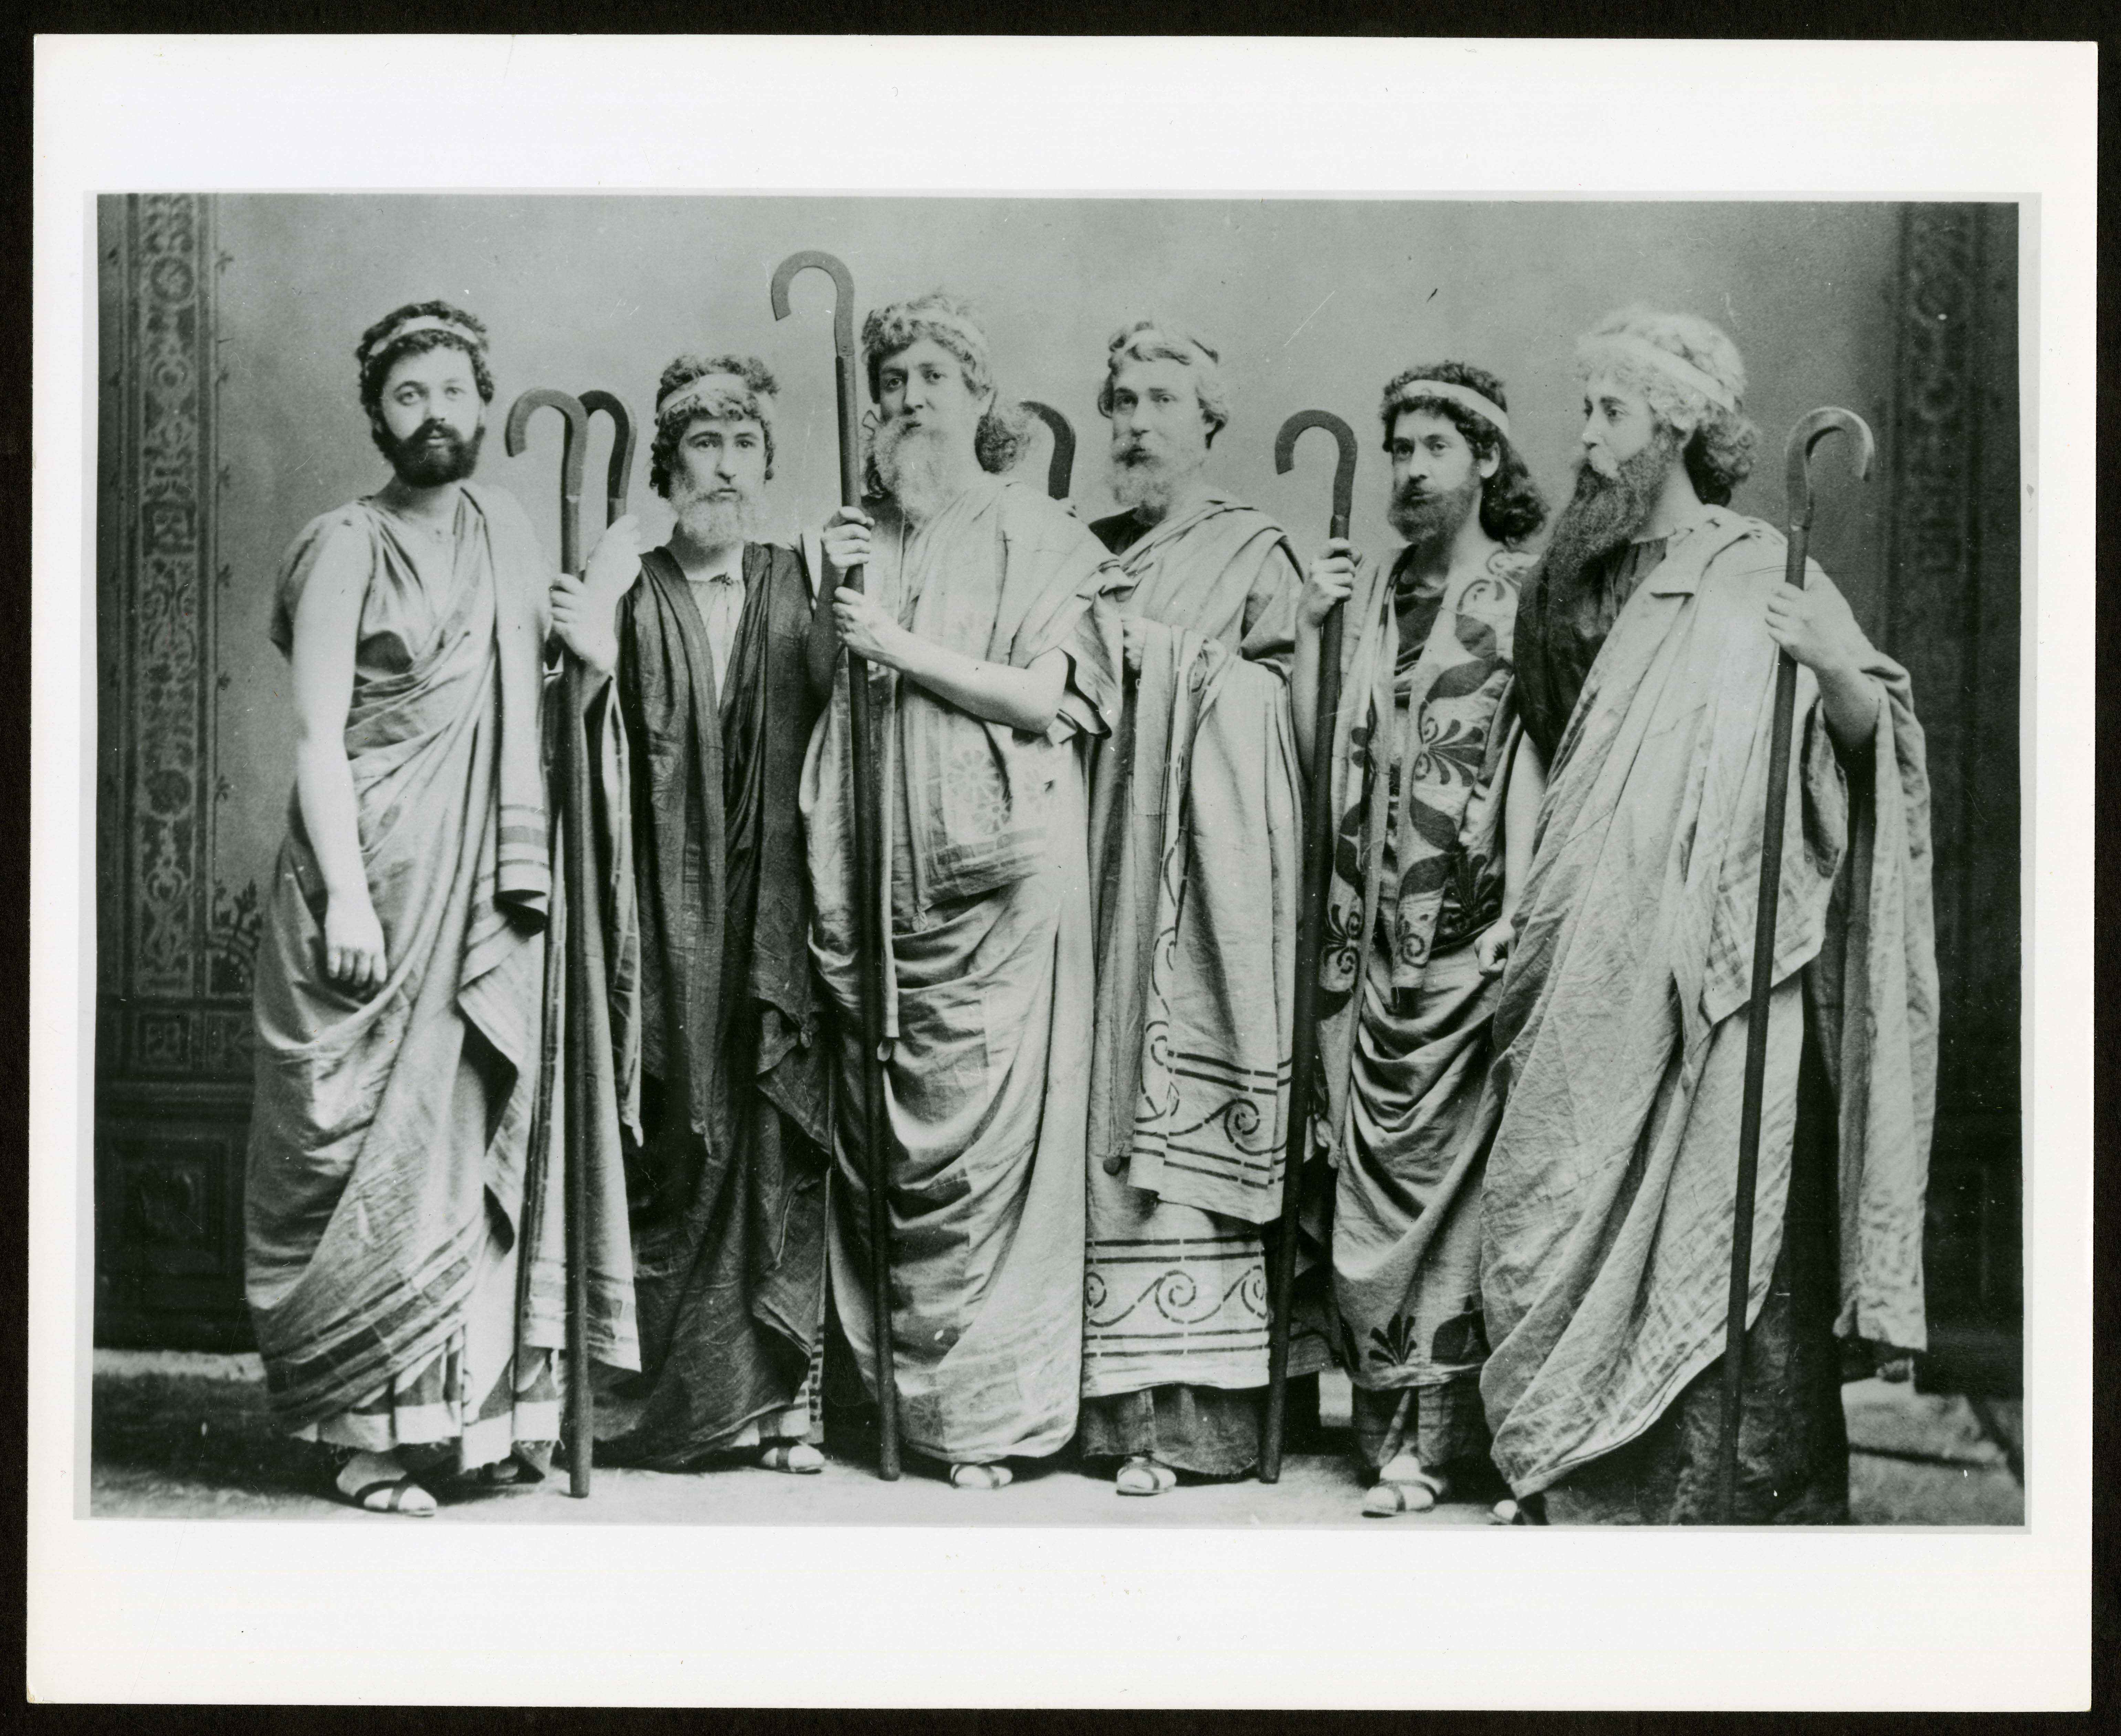 B & W image of six women dressed in ancient Greek style togas, and wearing fake beards, holding